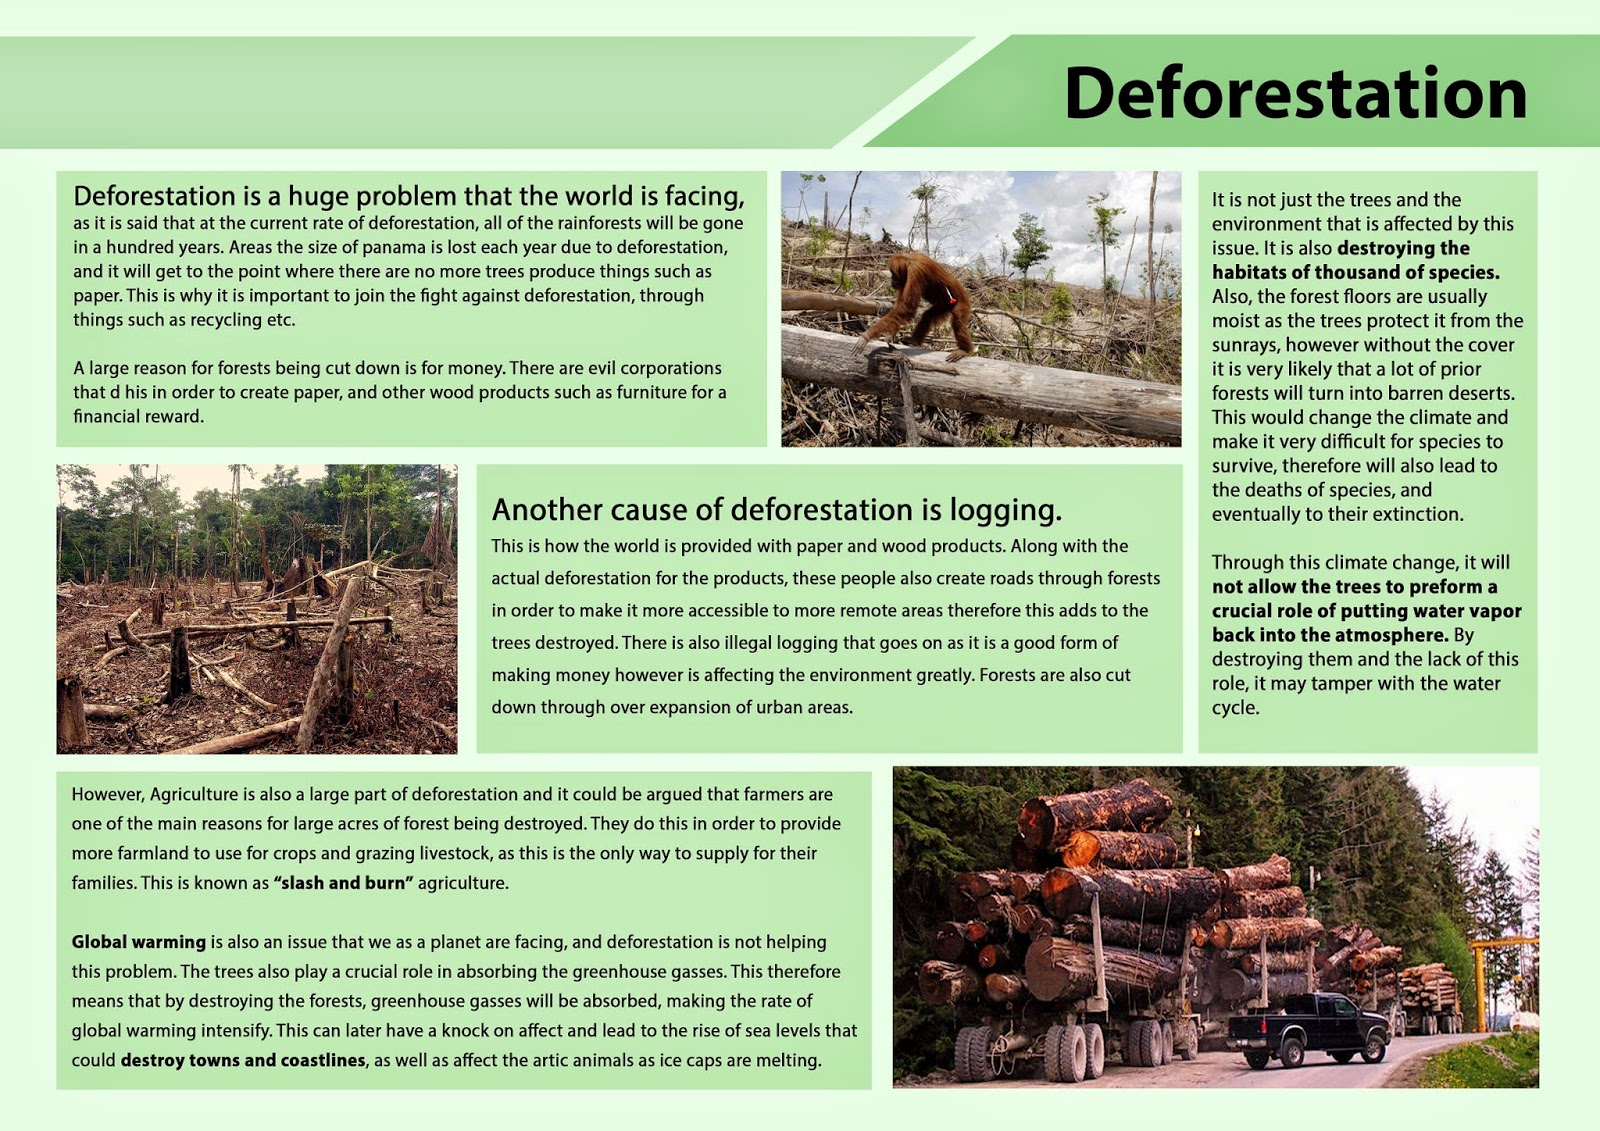 deforestation research essays Deforestation essay 5 (300 words) deforestation is the finishing of the forests by the human beings increasing human population day by day is increasing the need for land on the earth for agricultural, industrial, residential, commercial, cities and other purposes which involves permanent forest removal.